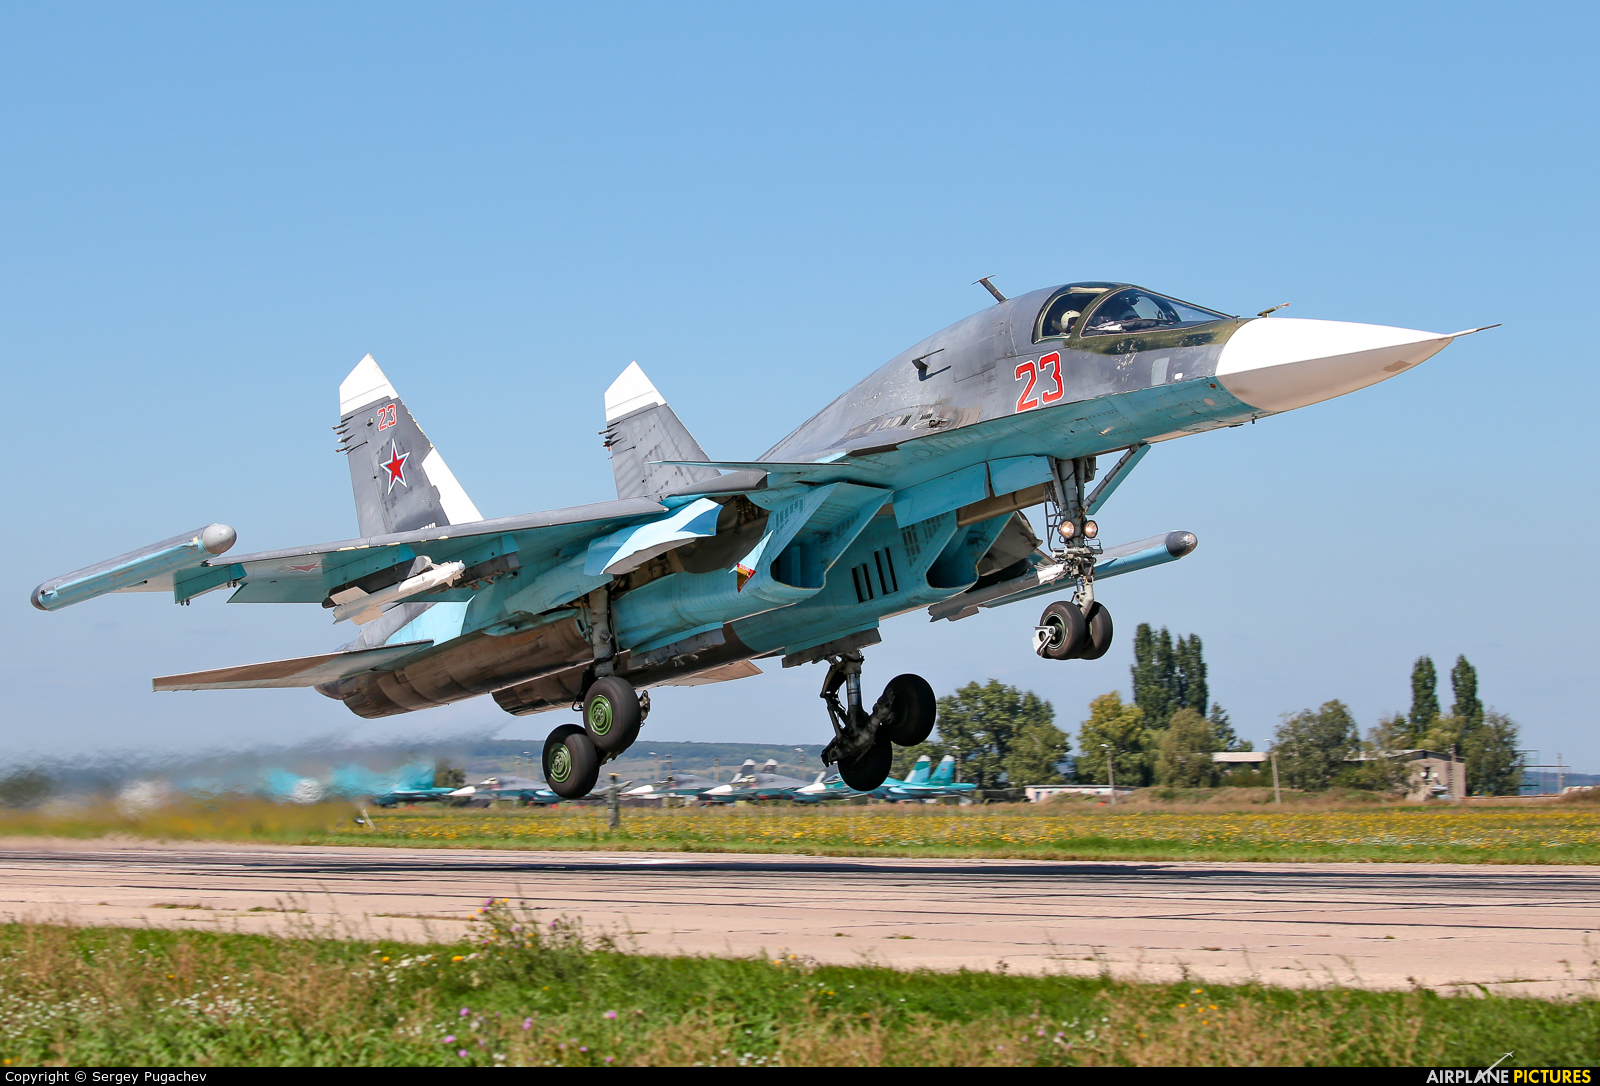 Russia - Air Force 23 aircraft at Undisclosed Location